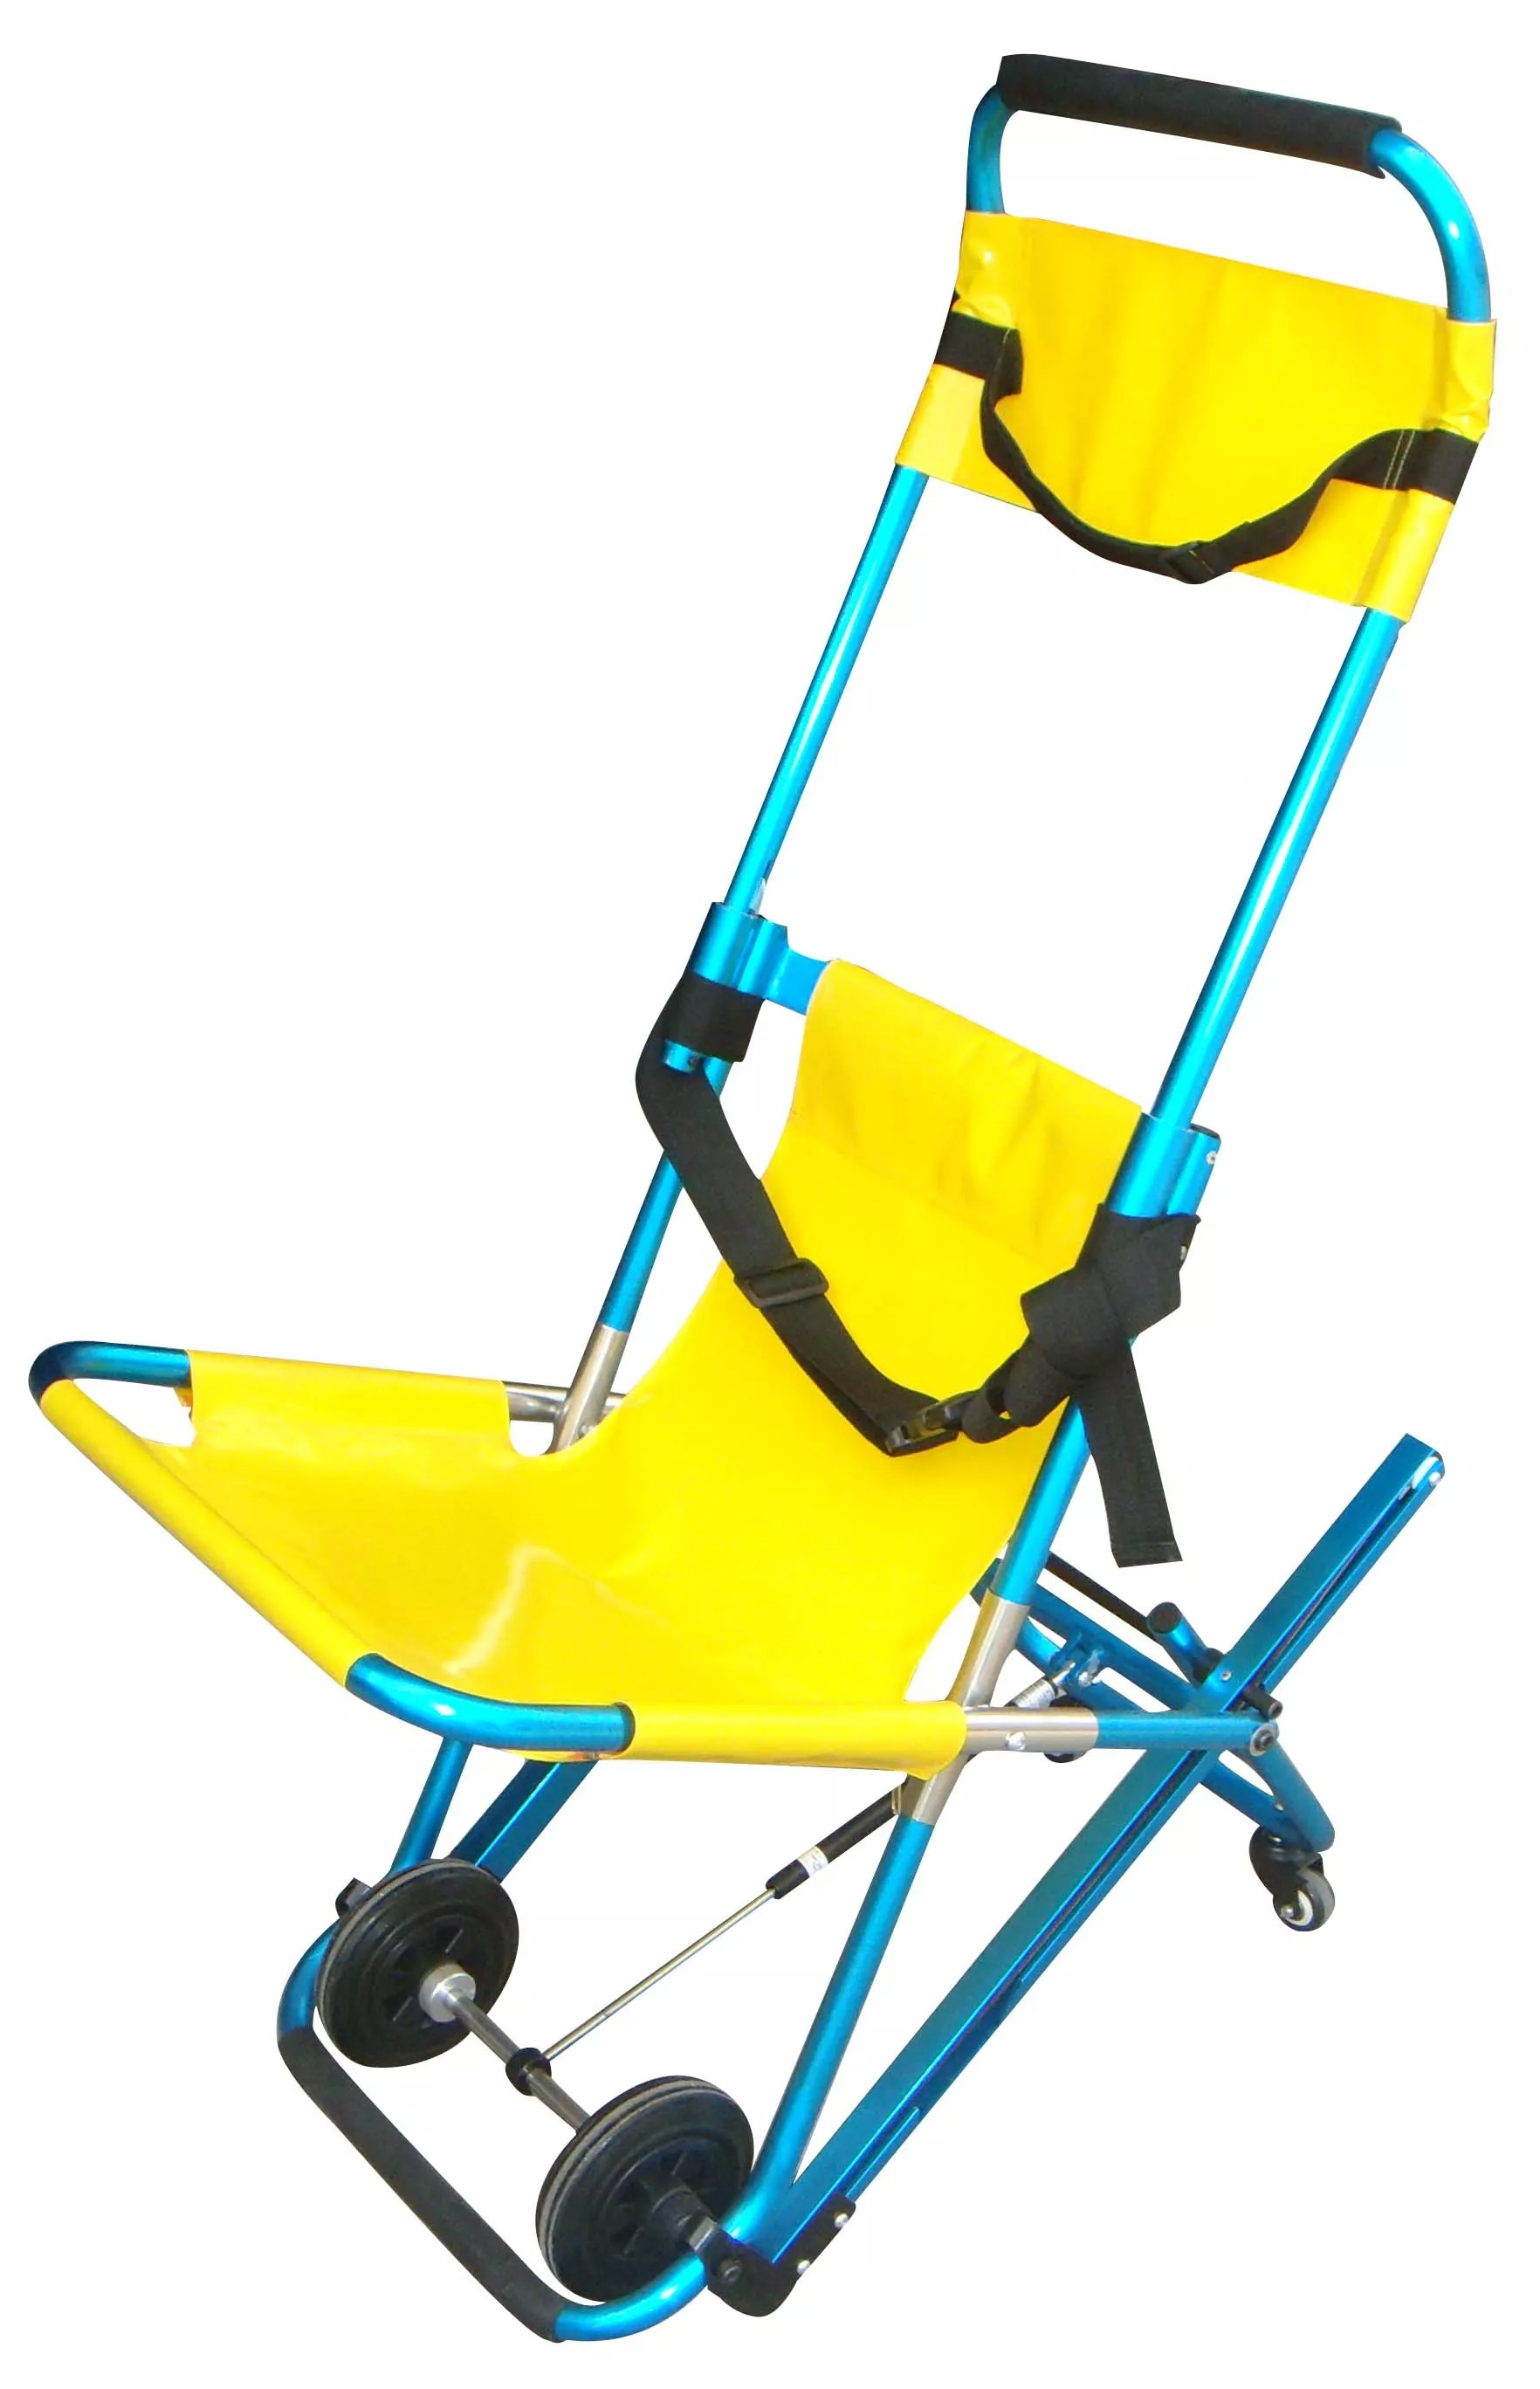 evac chair canada best gaming pc emergency evacuation staircase stretcher lift patient